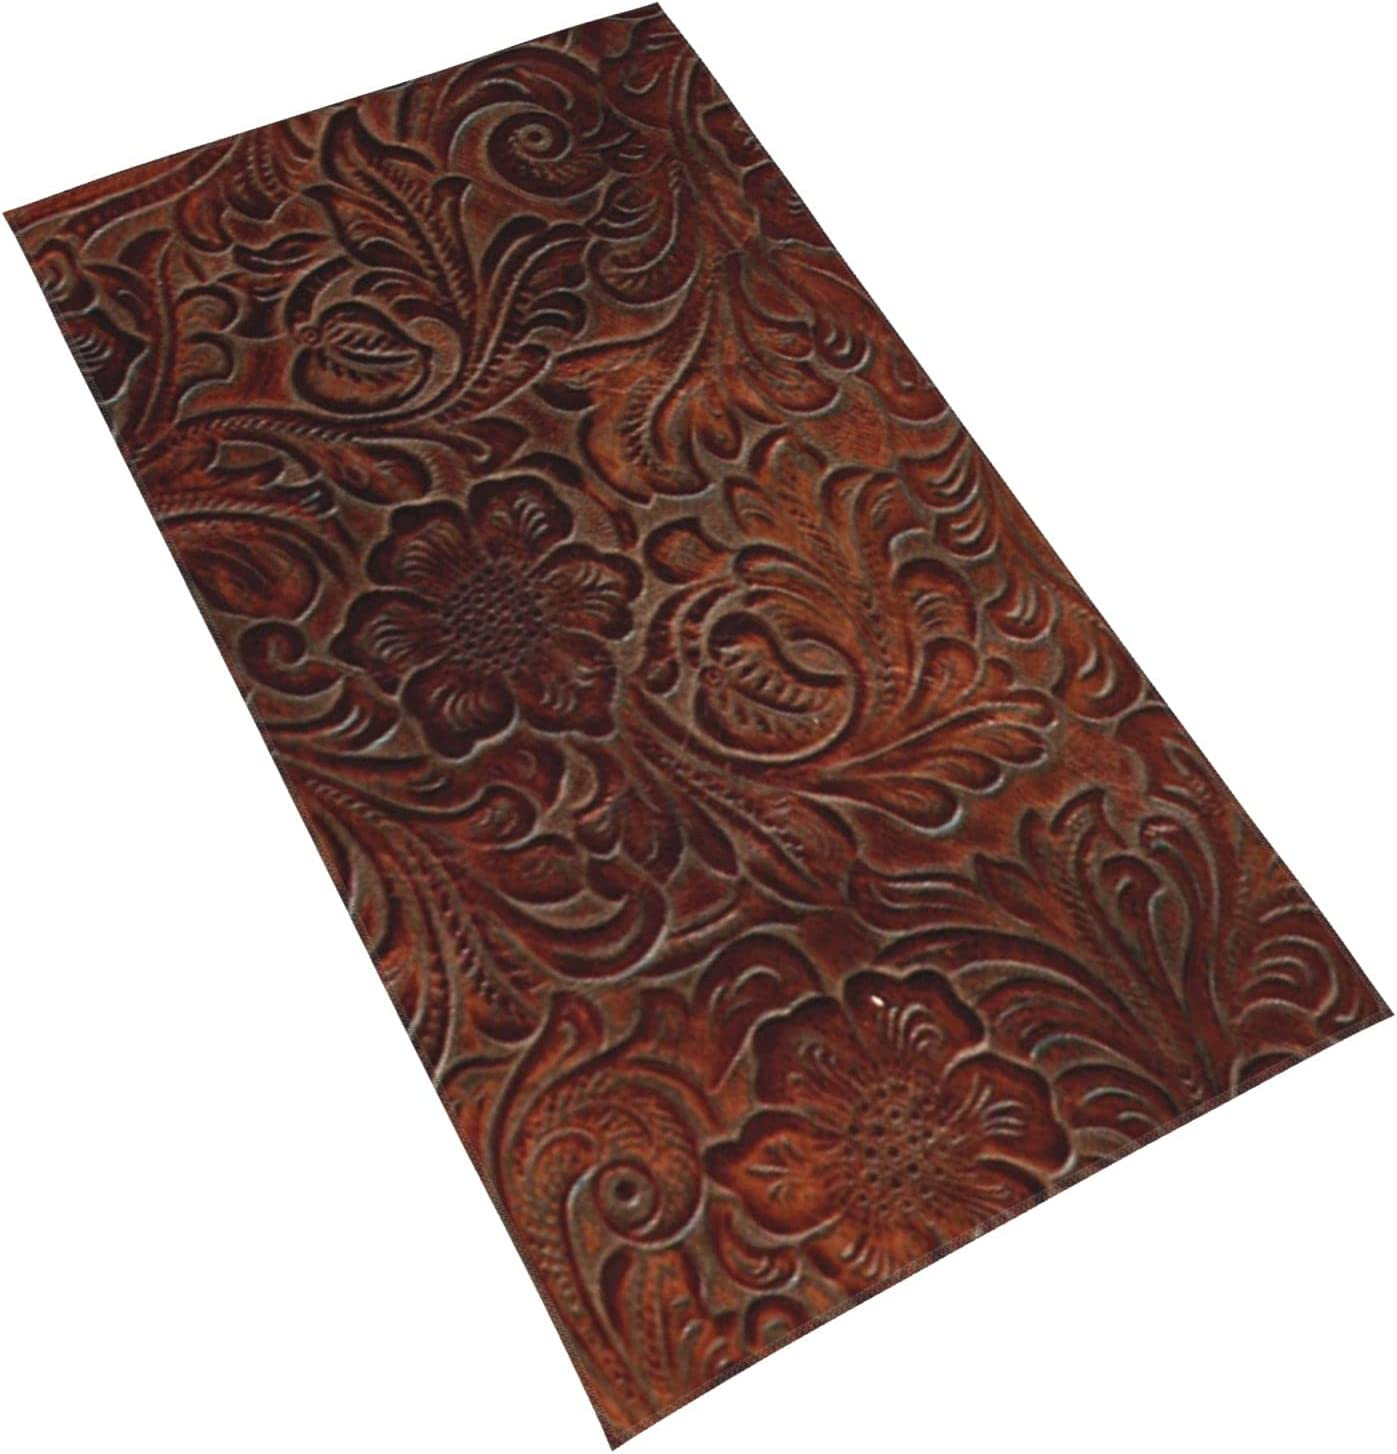 Burnished Rich Brown Tooled Max 43% OFF Leather Towels Bath Pattern Our shop most popular Tow Face